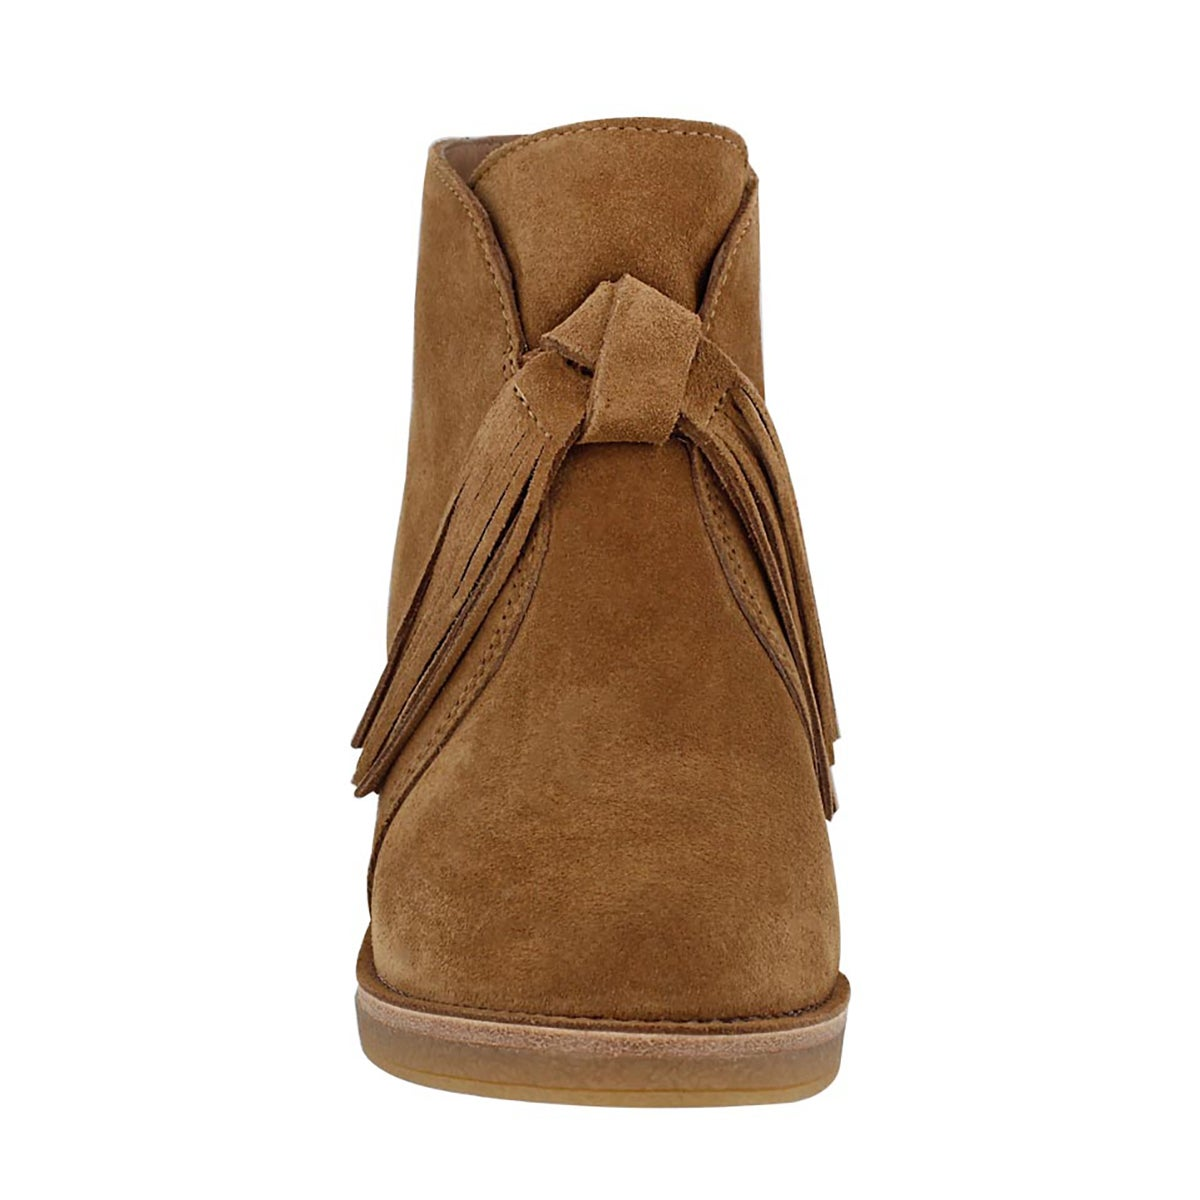 Lds Corin chestnut casual ankle boot